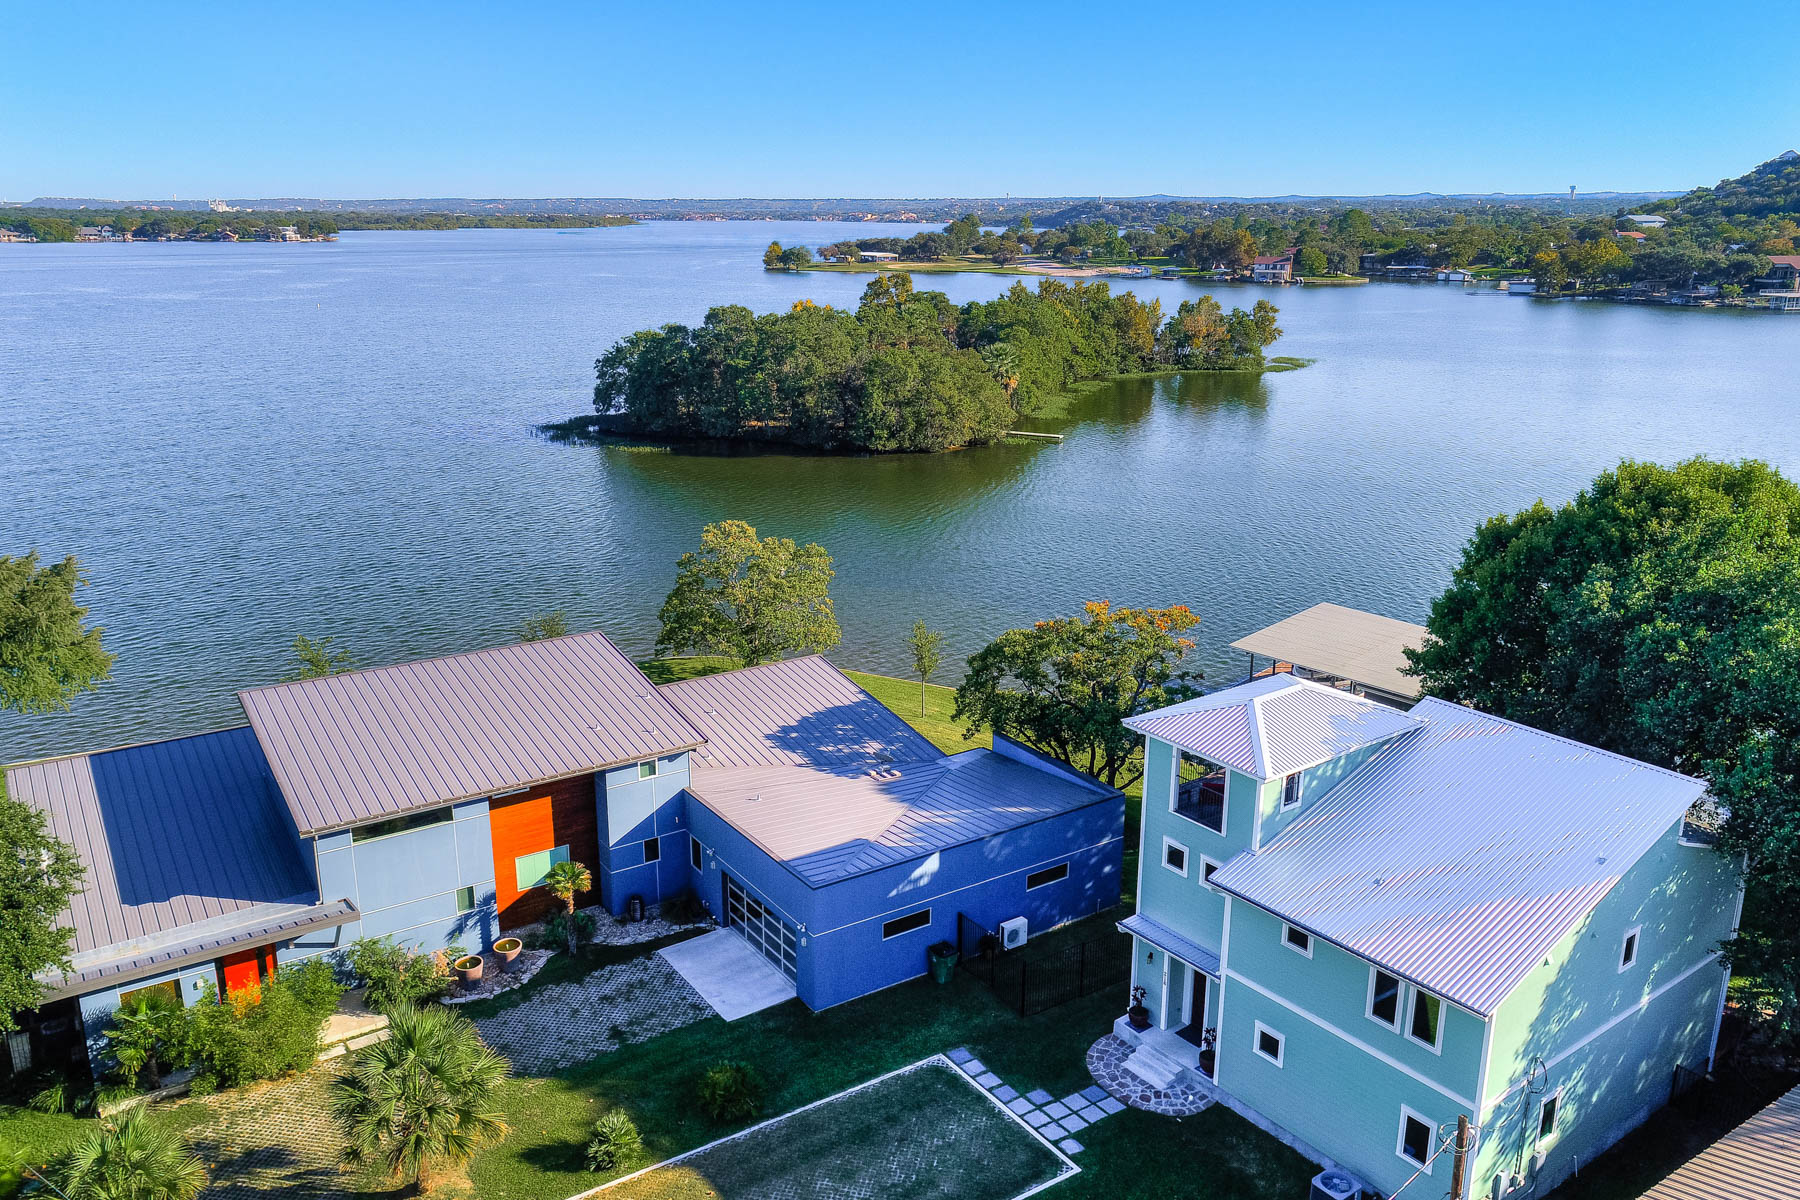 Single Family Home for Sale at Life is Short! Buy the Lake House! 218 Lakeview Dr Sunrise Beach, Texas 78643 United States